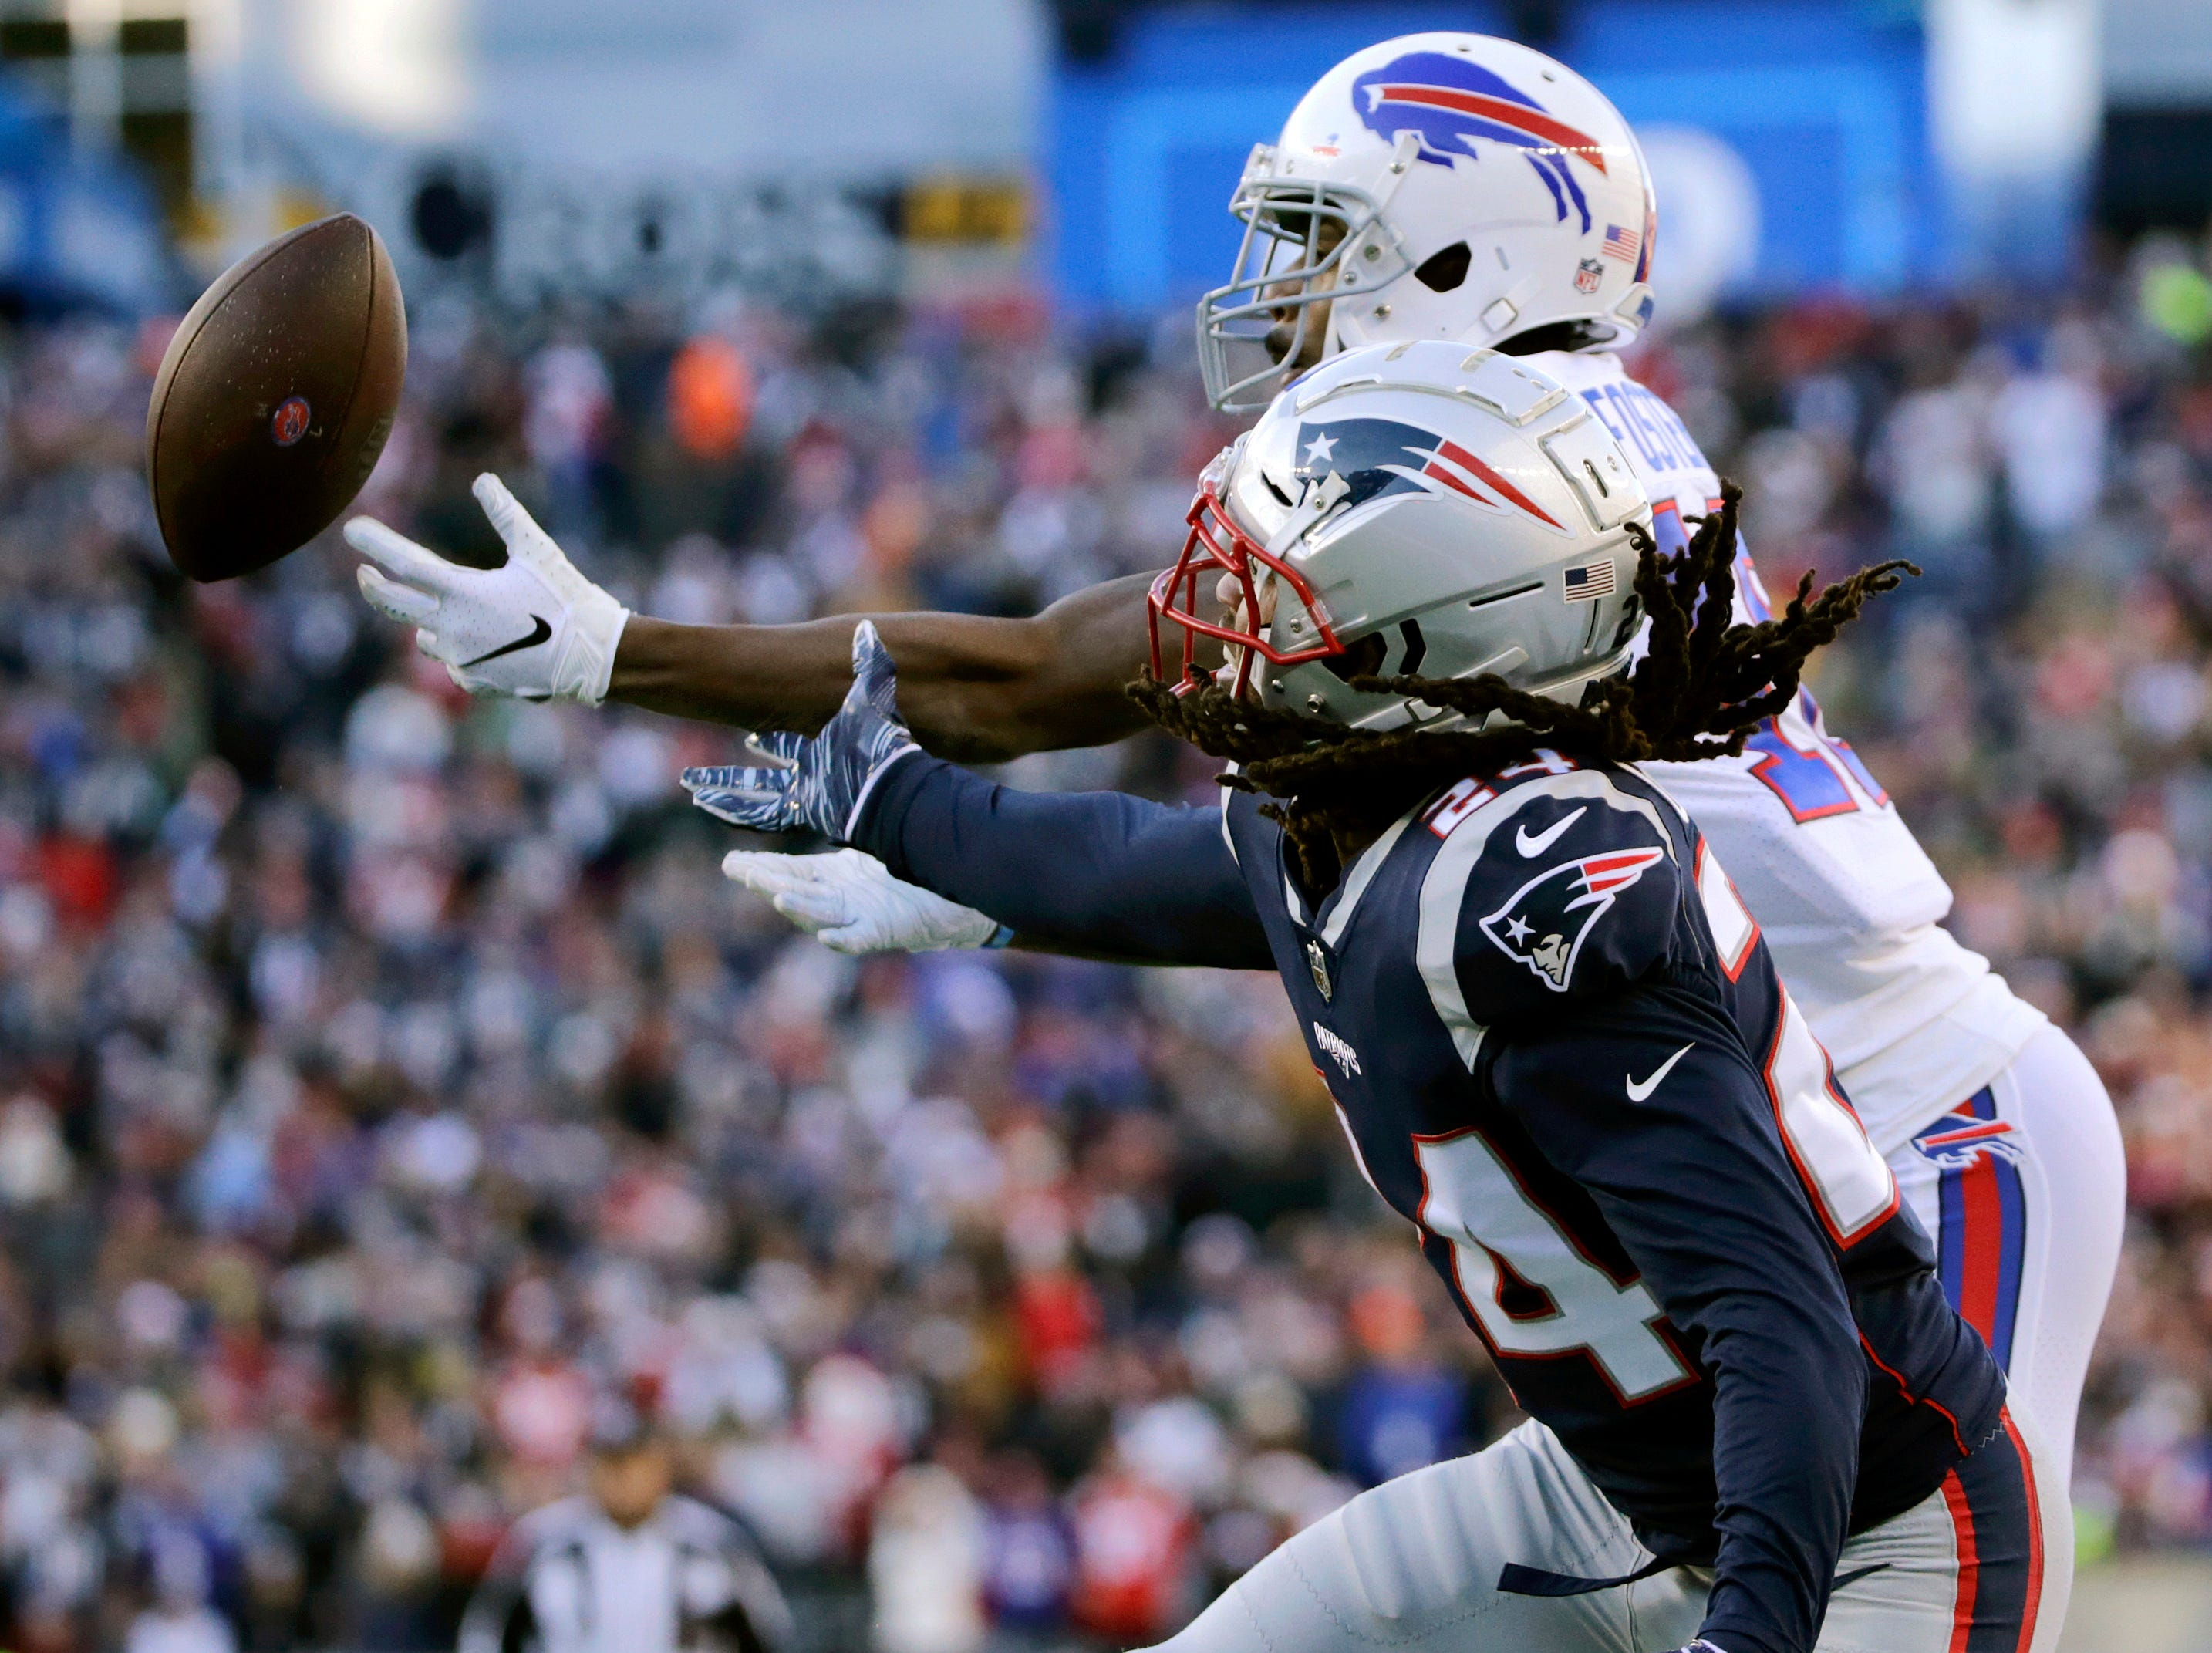 New England Patriots defensive back Stephon Gilmore, front, breaks up a pass in the end zone intended for Buffalo Bills wide receiver Robert Foster, rear, during the first half of an NFL football game, Sunday, Dec. 23, 2018, in Foxborough, Mass. (AP Photo/Elise Amendola)